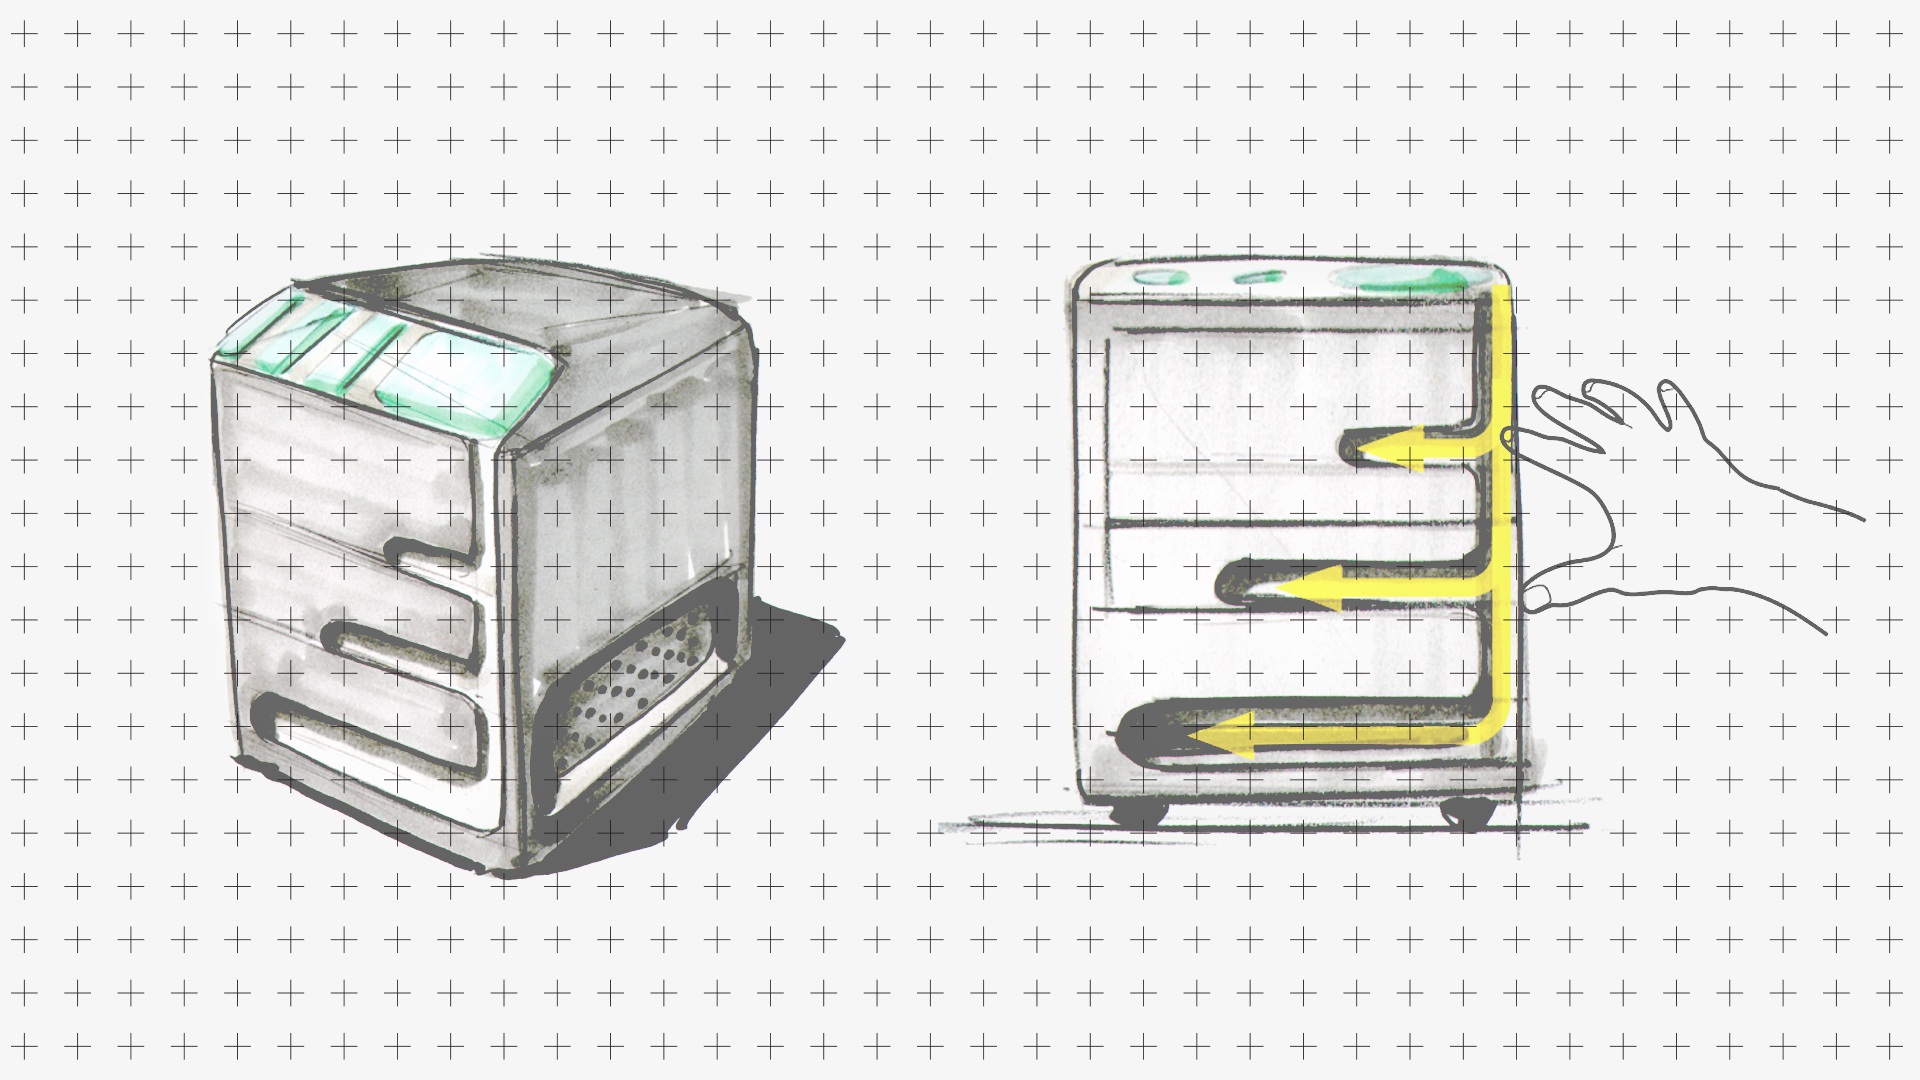 This is a concept sketch of the Elia touch printer for illustration purposes only.